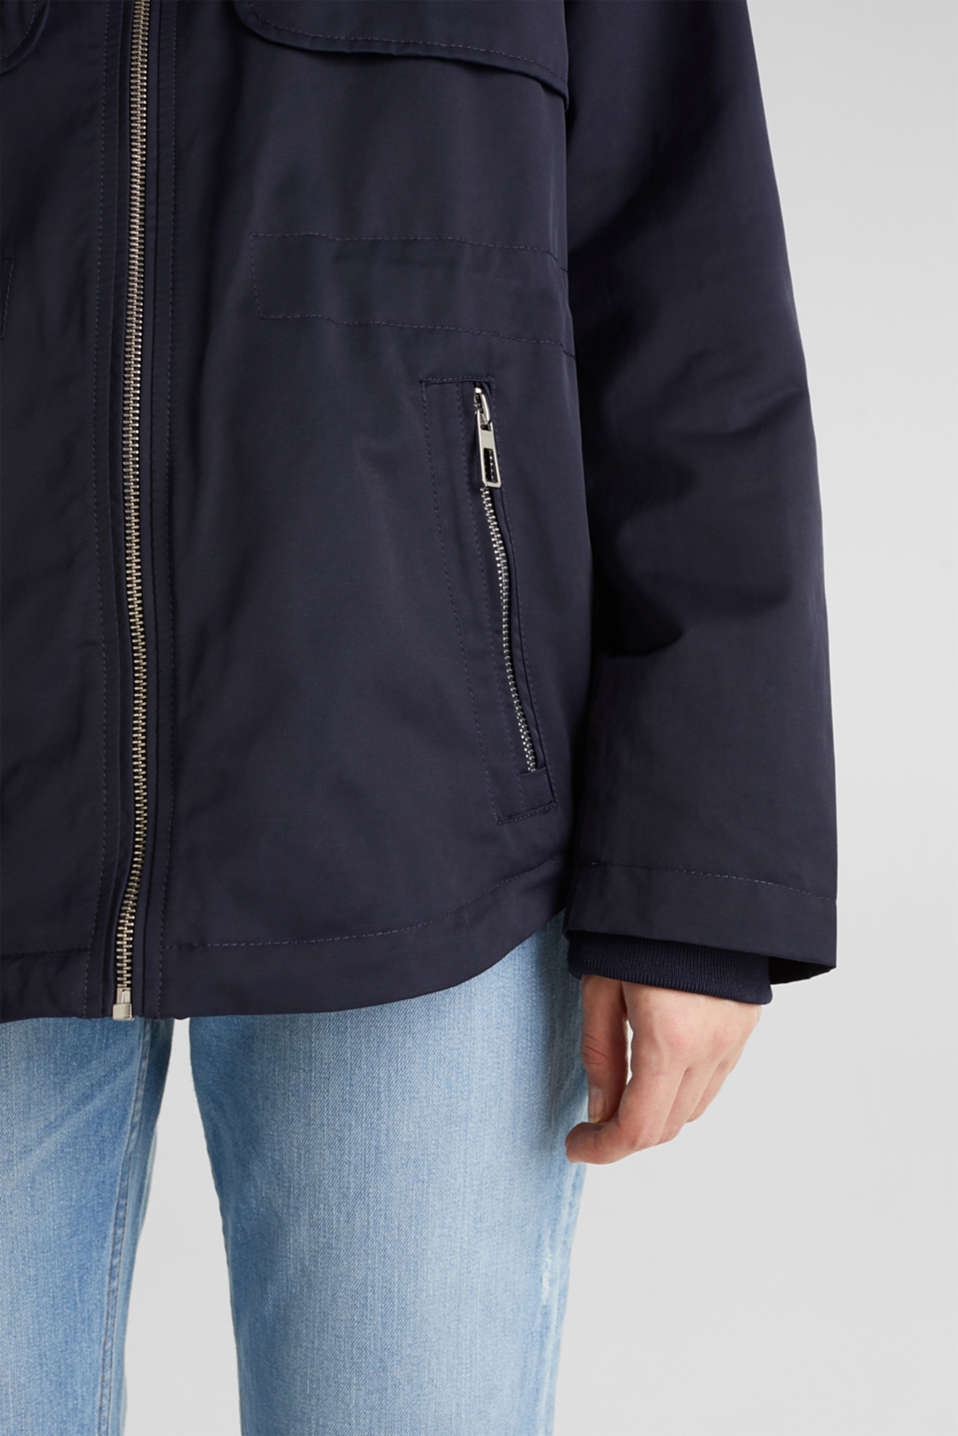 Short parka with a hood, NAVY, detail image number 5